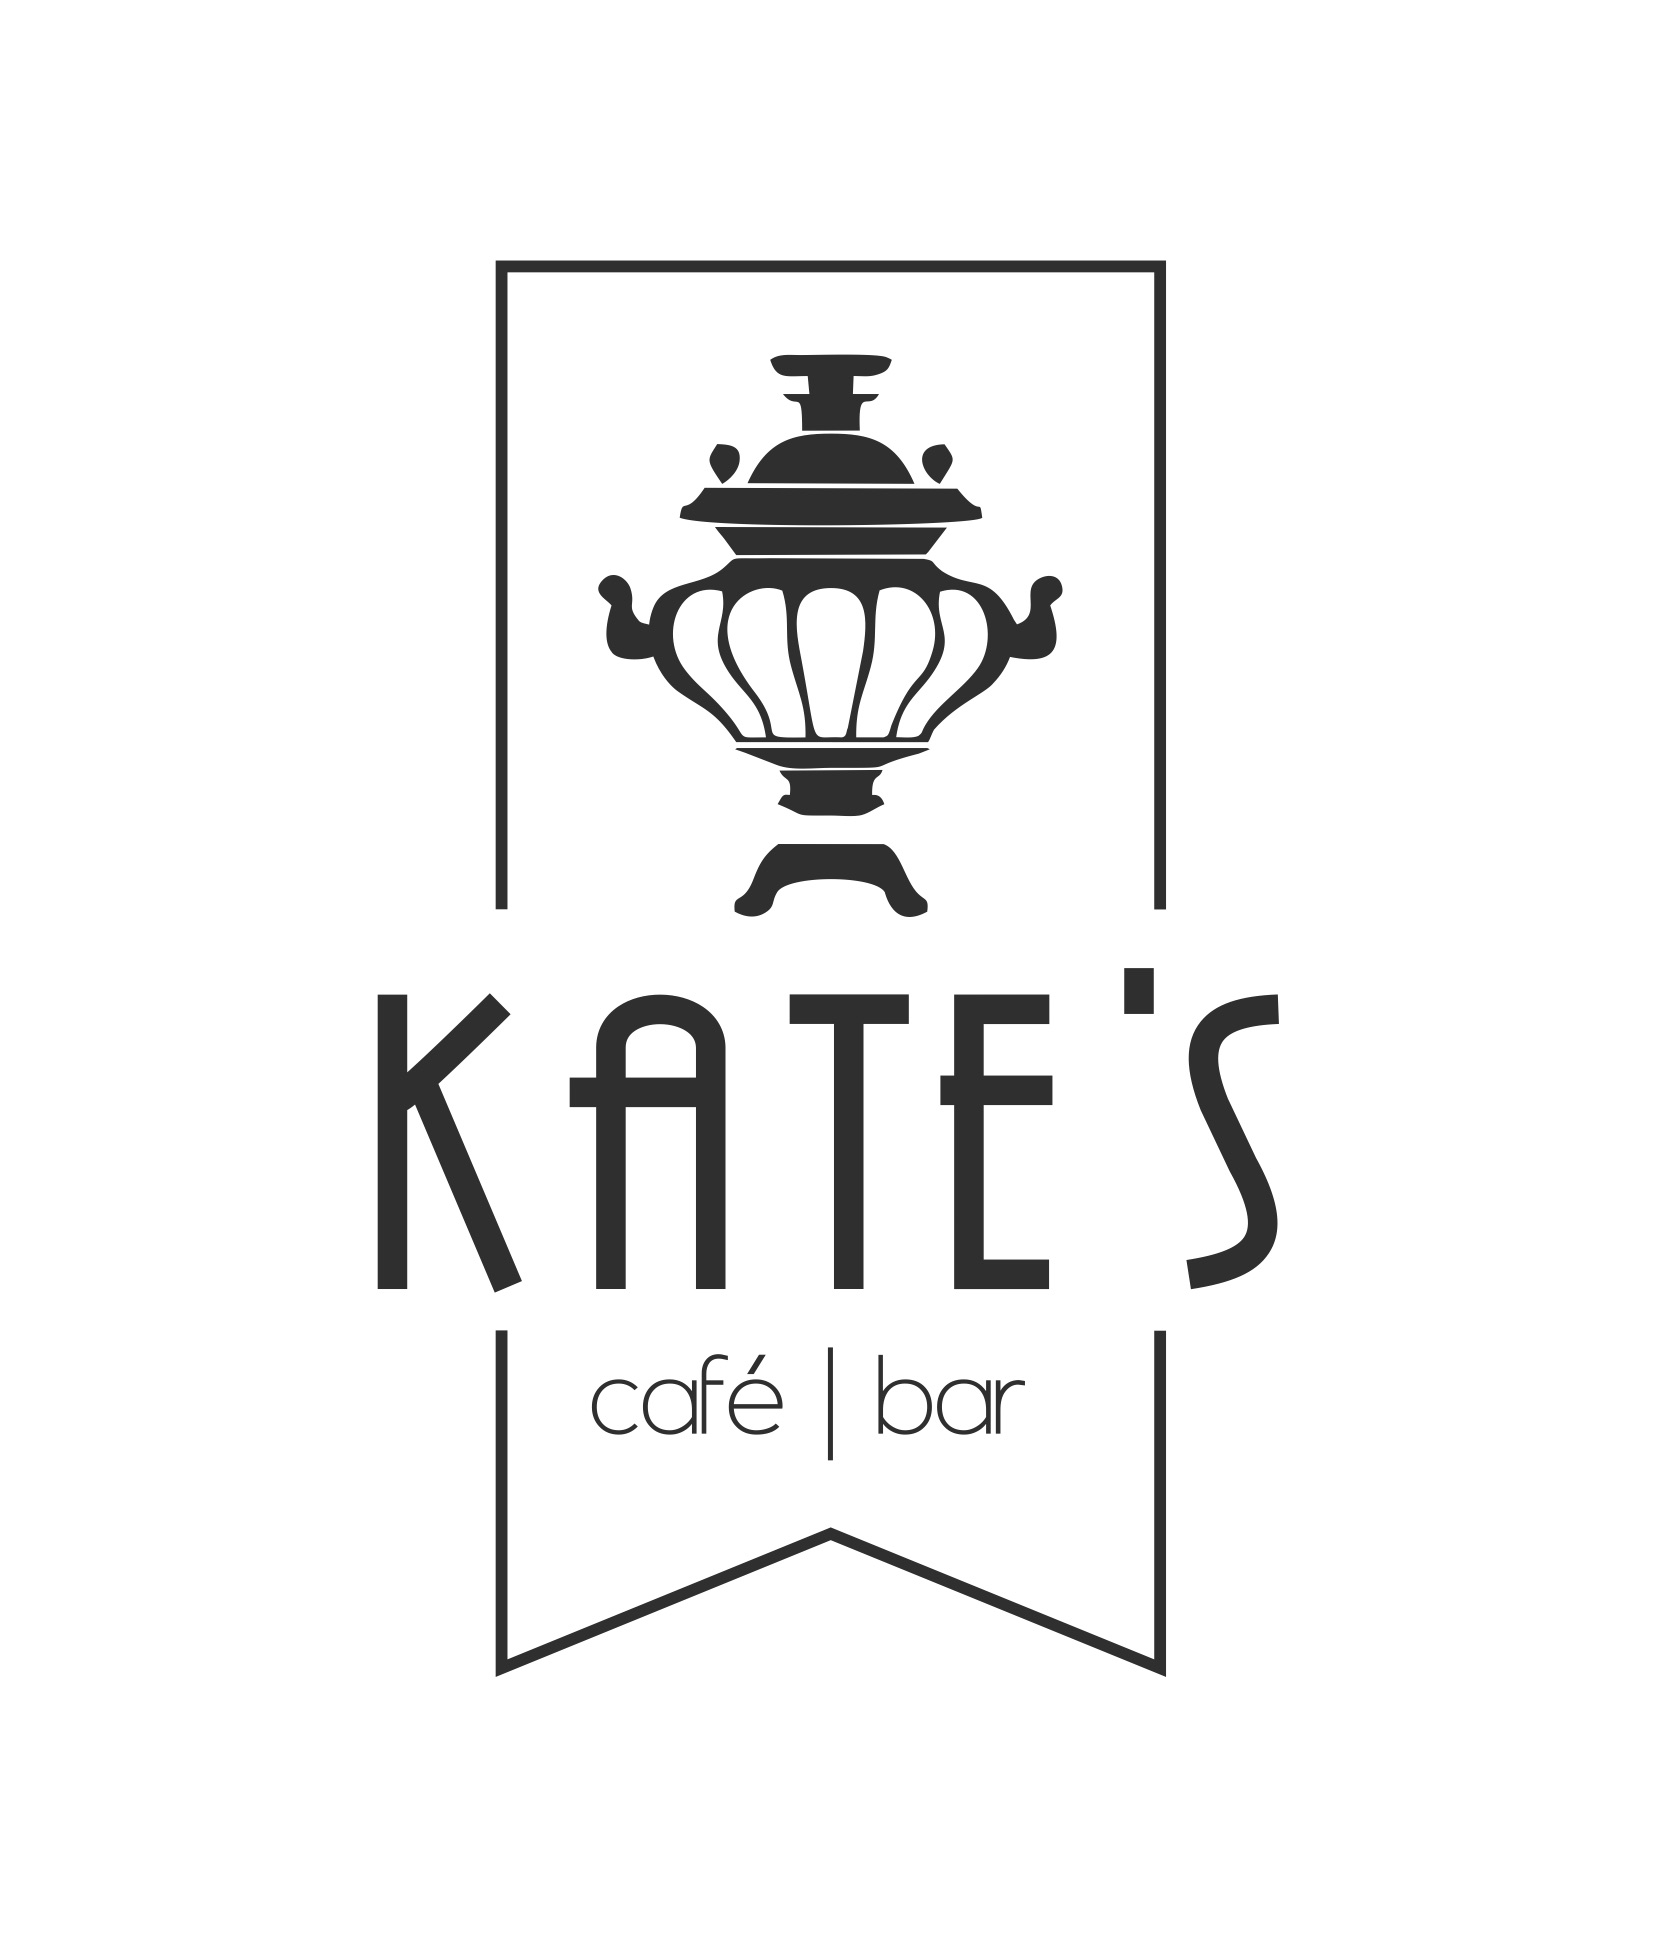 Kate's